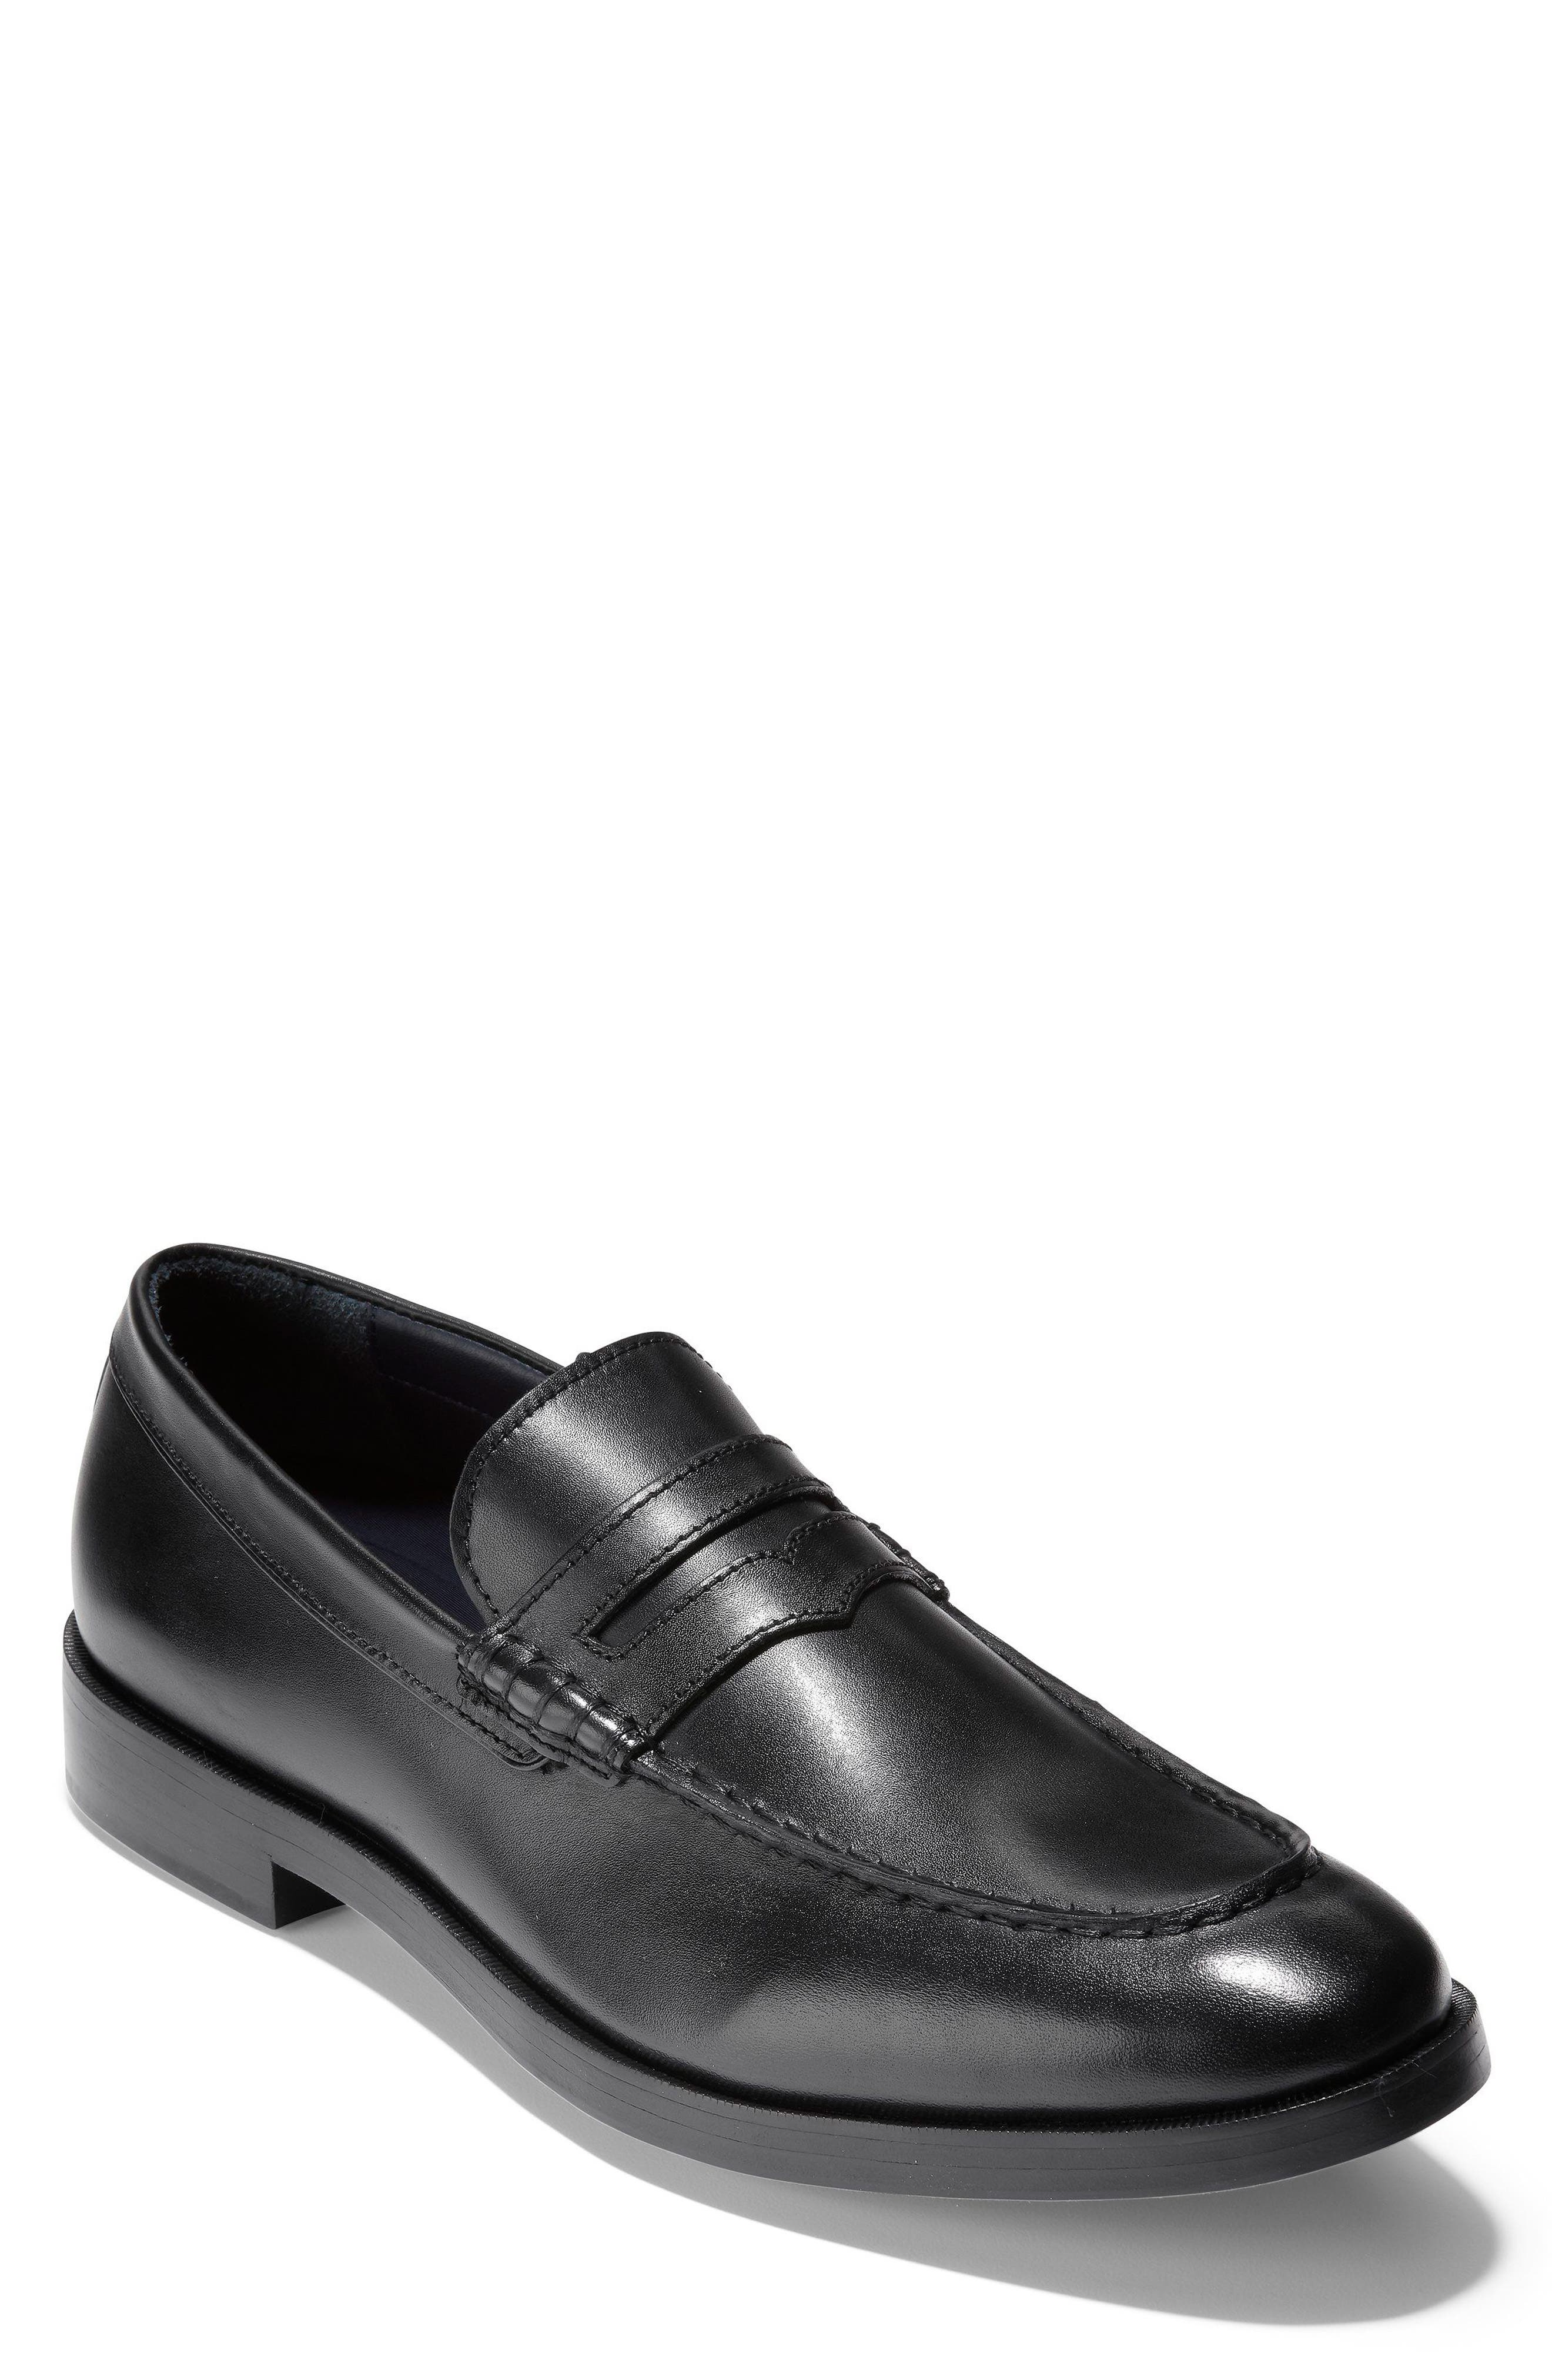 Hamilton Grand Penny Loafer,                             Main thumbnail 1, color,                             001